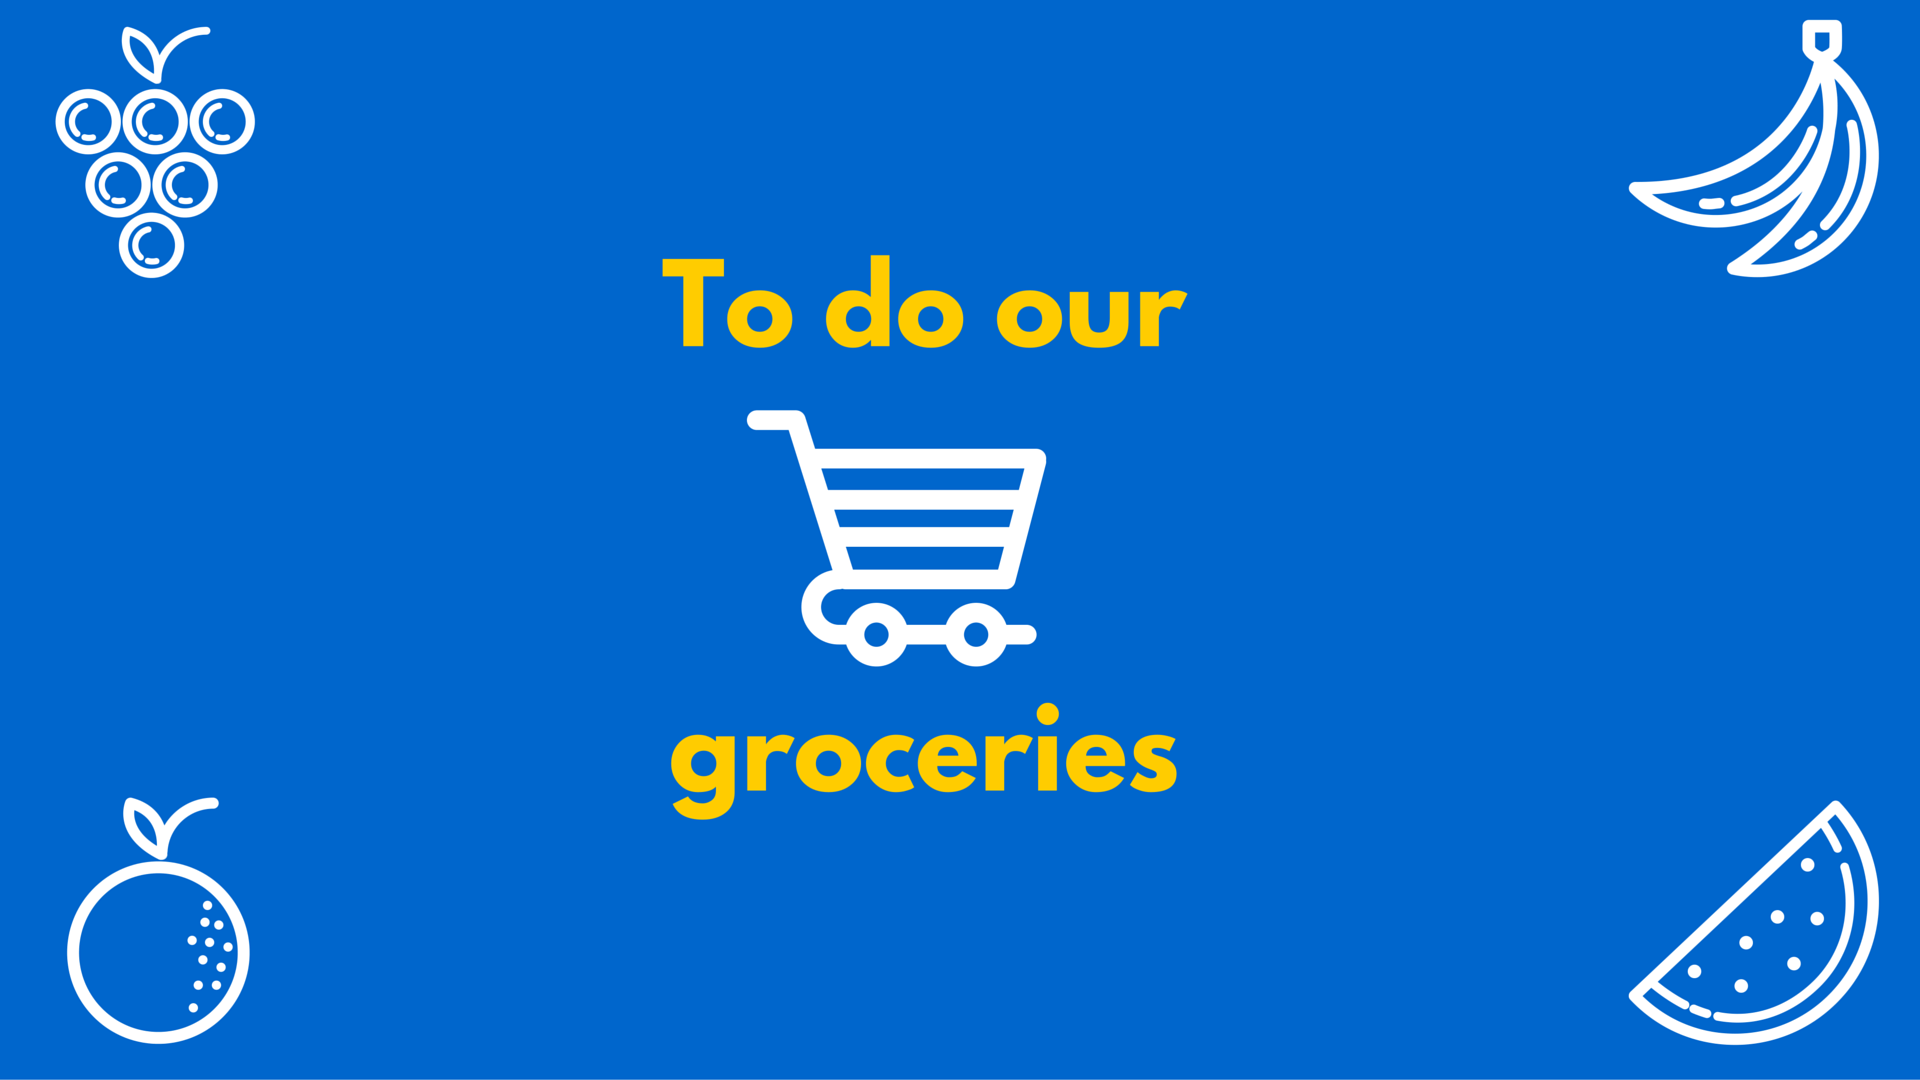 To do our groceries